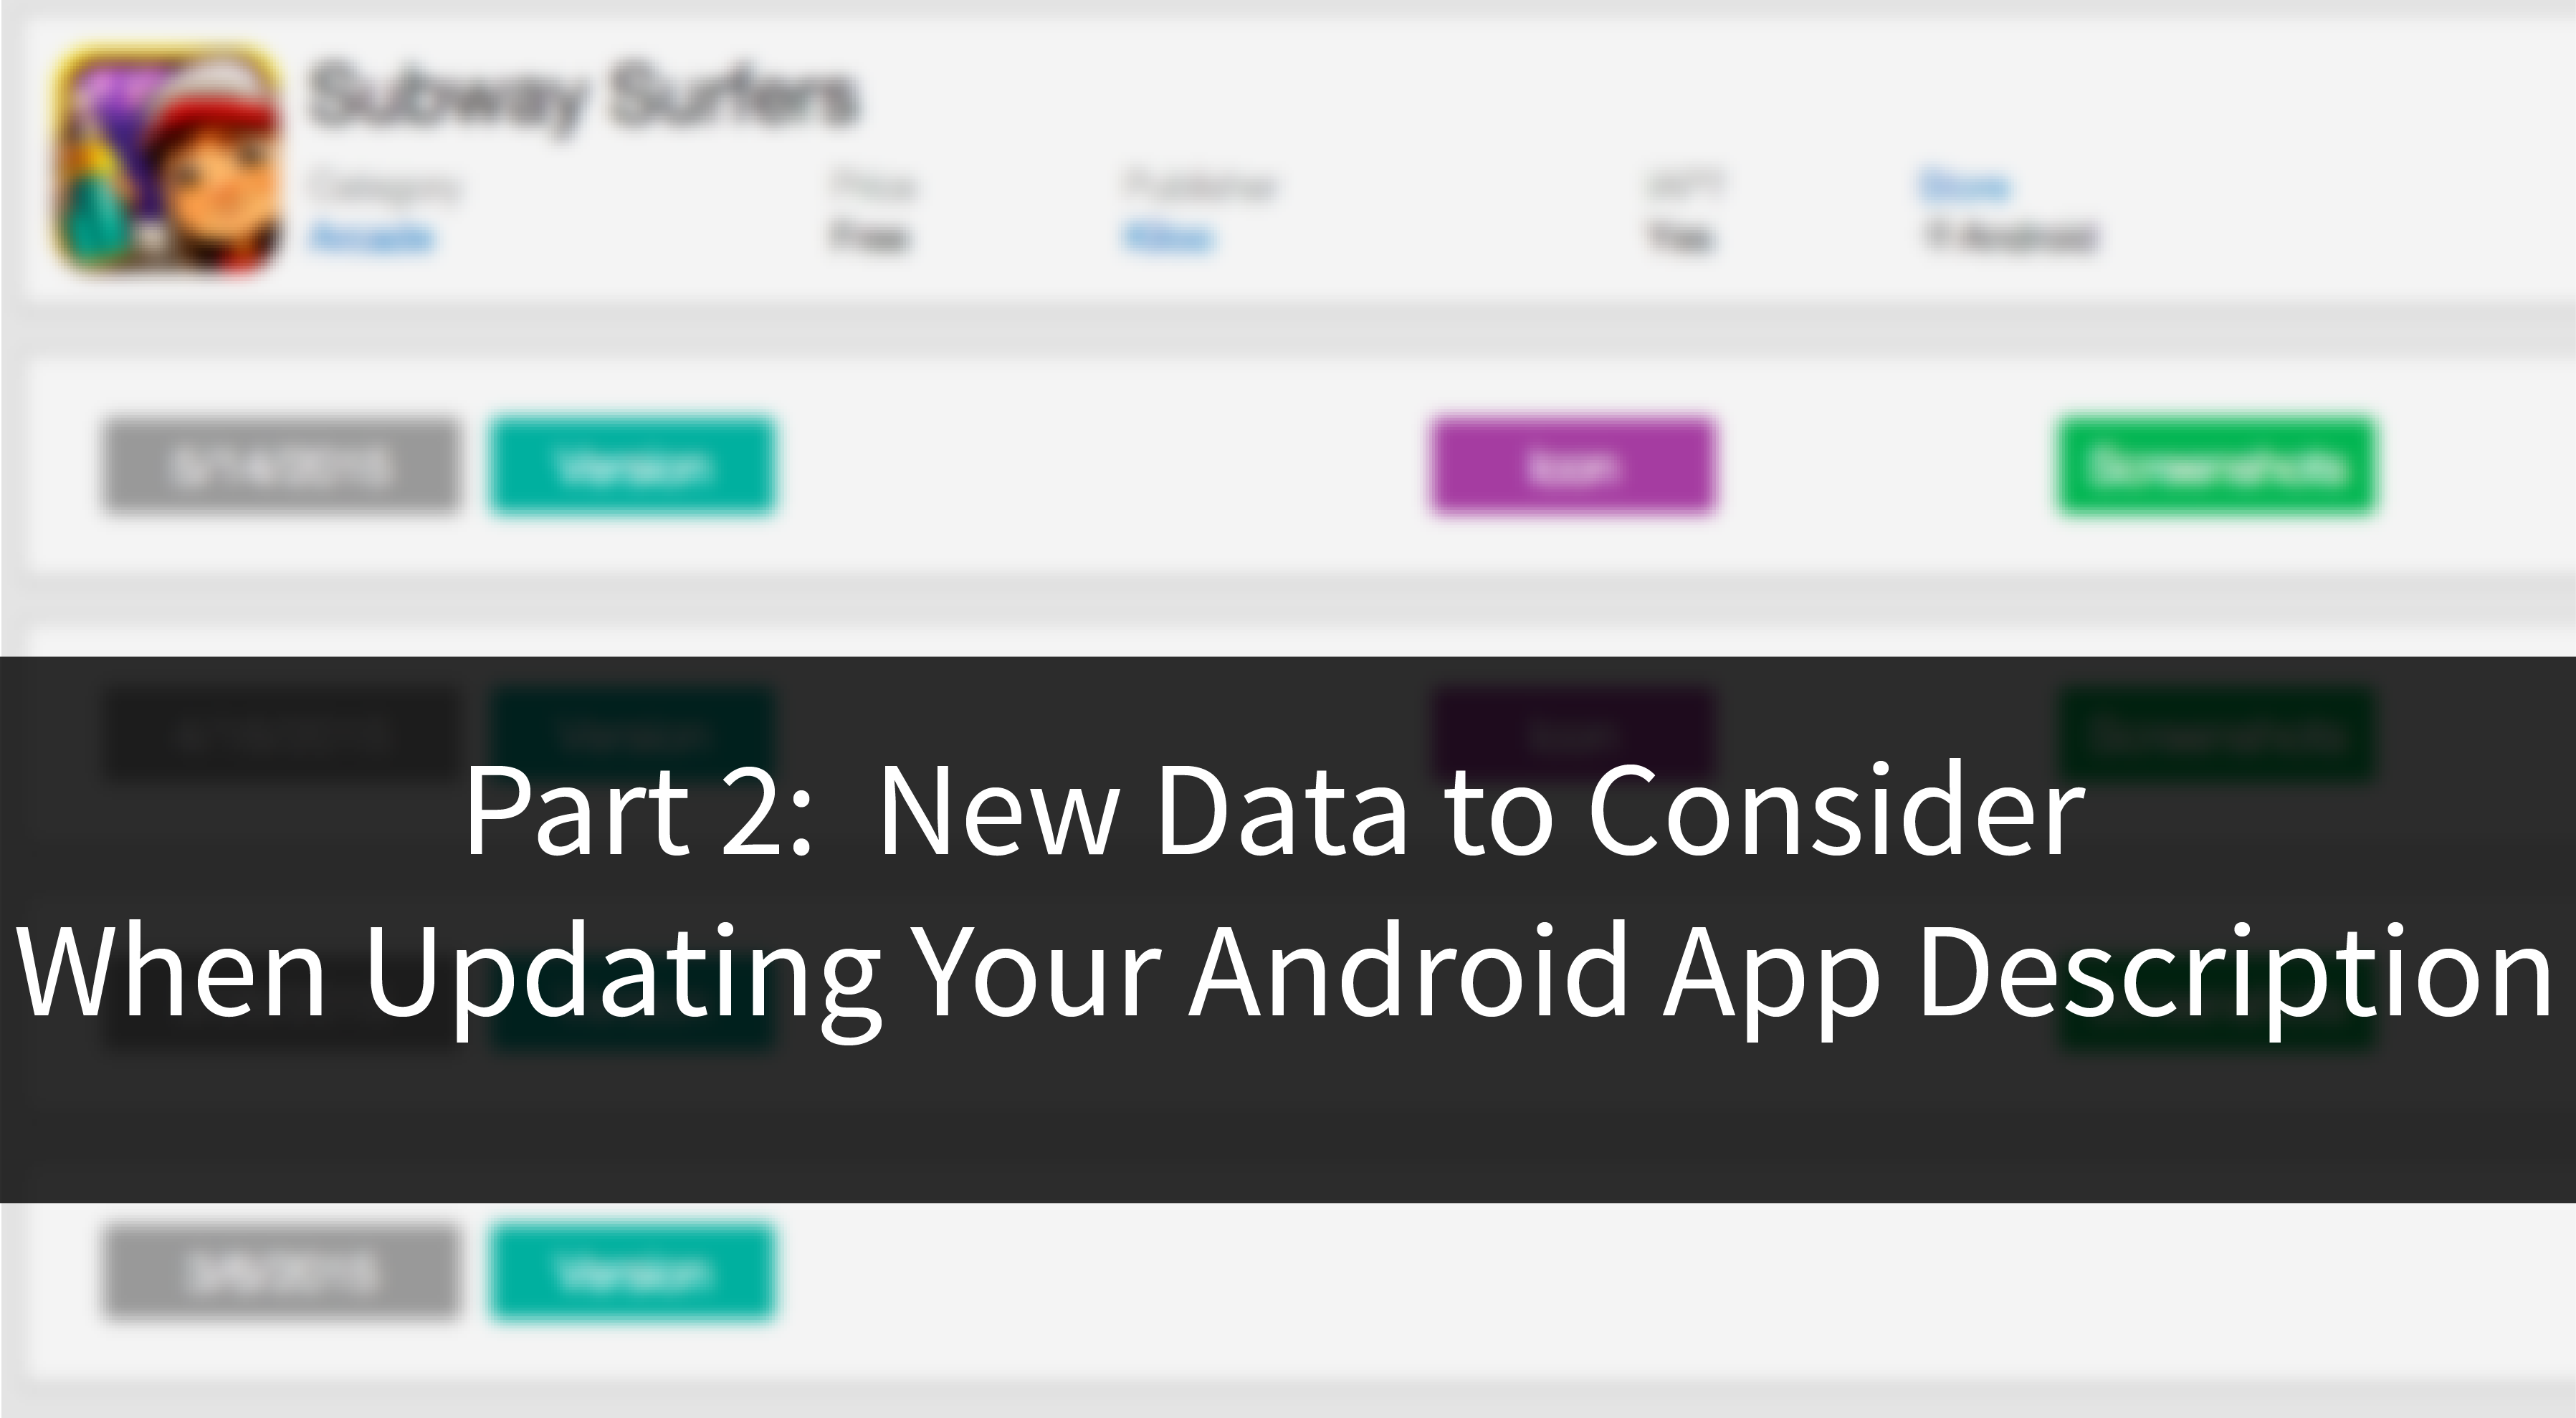 Part 2: New Data to Consider When Updating Your Android App Description